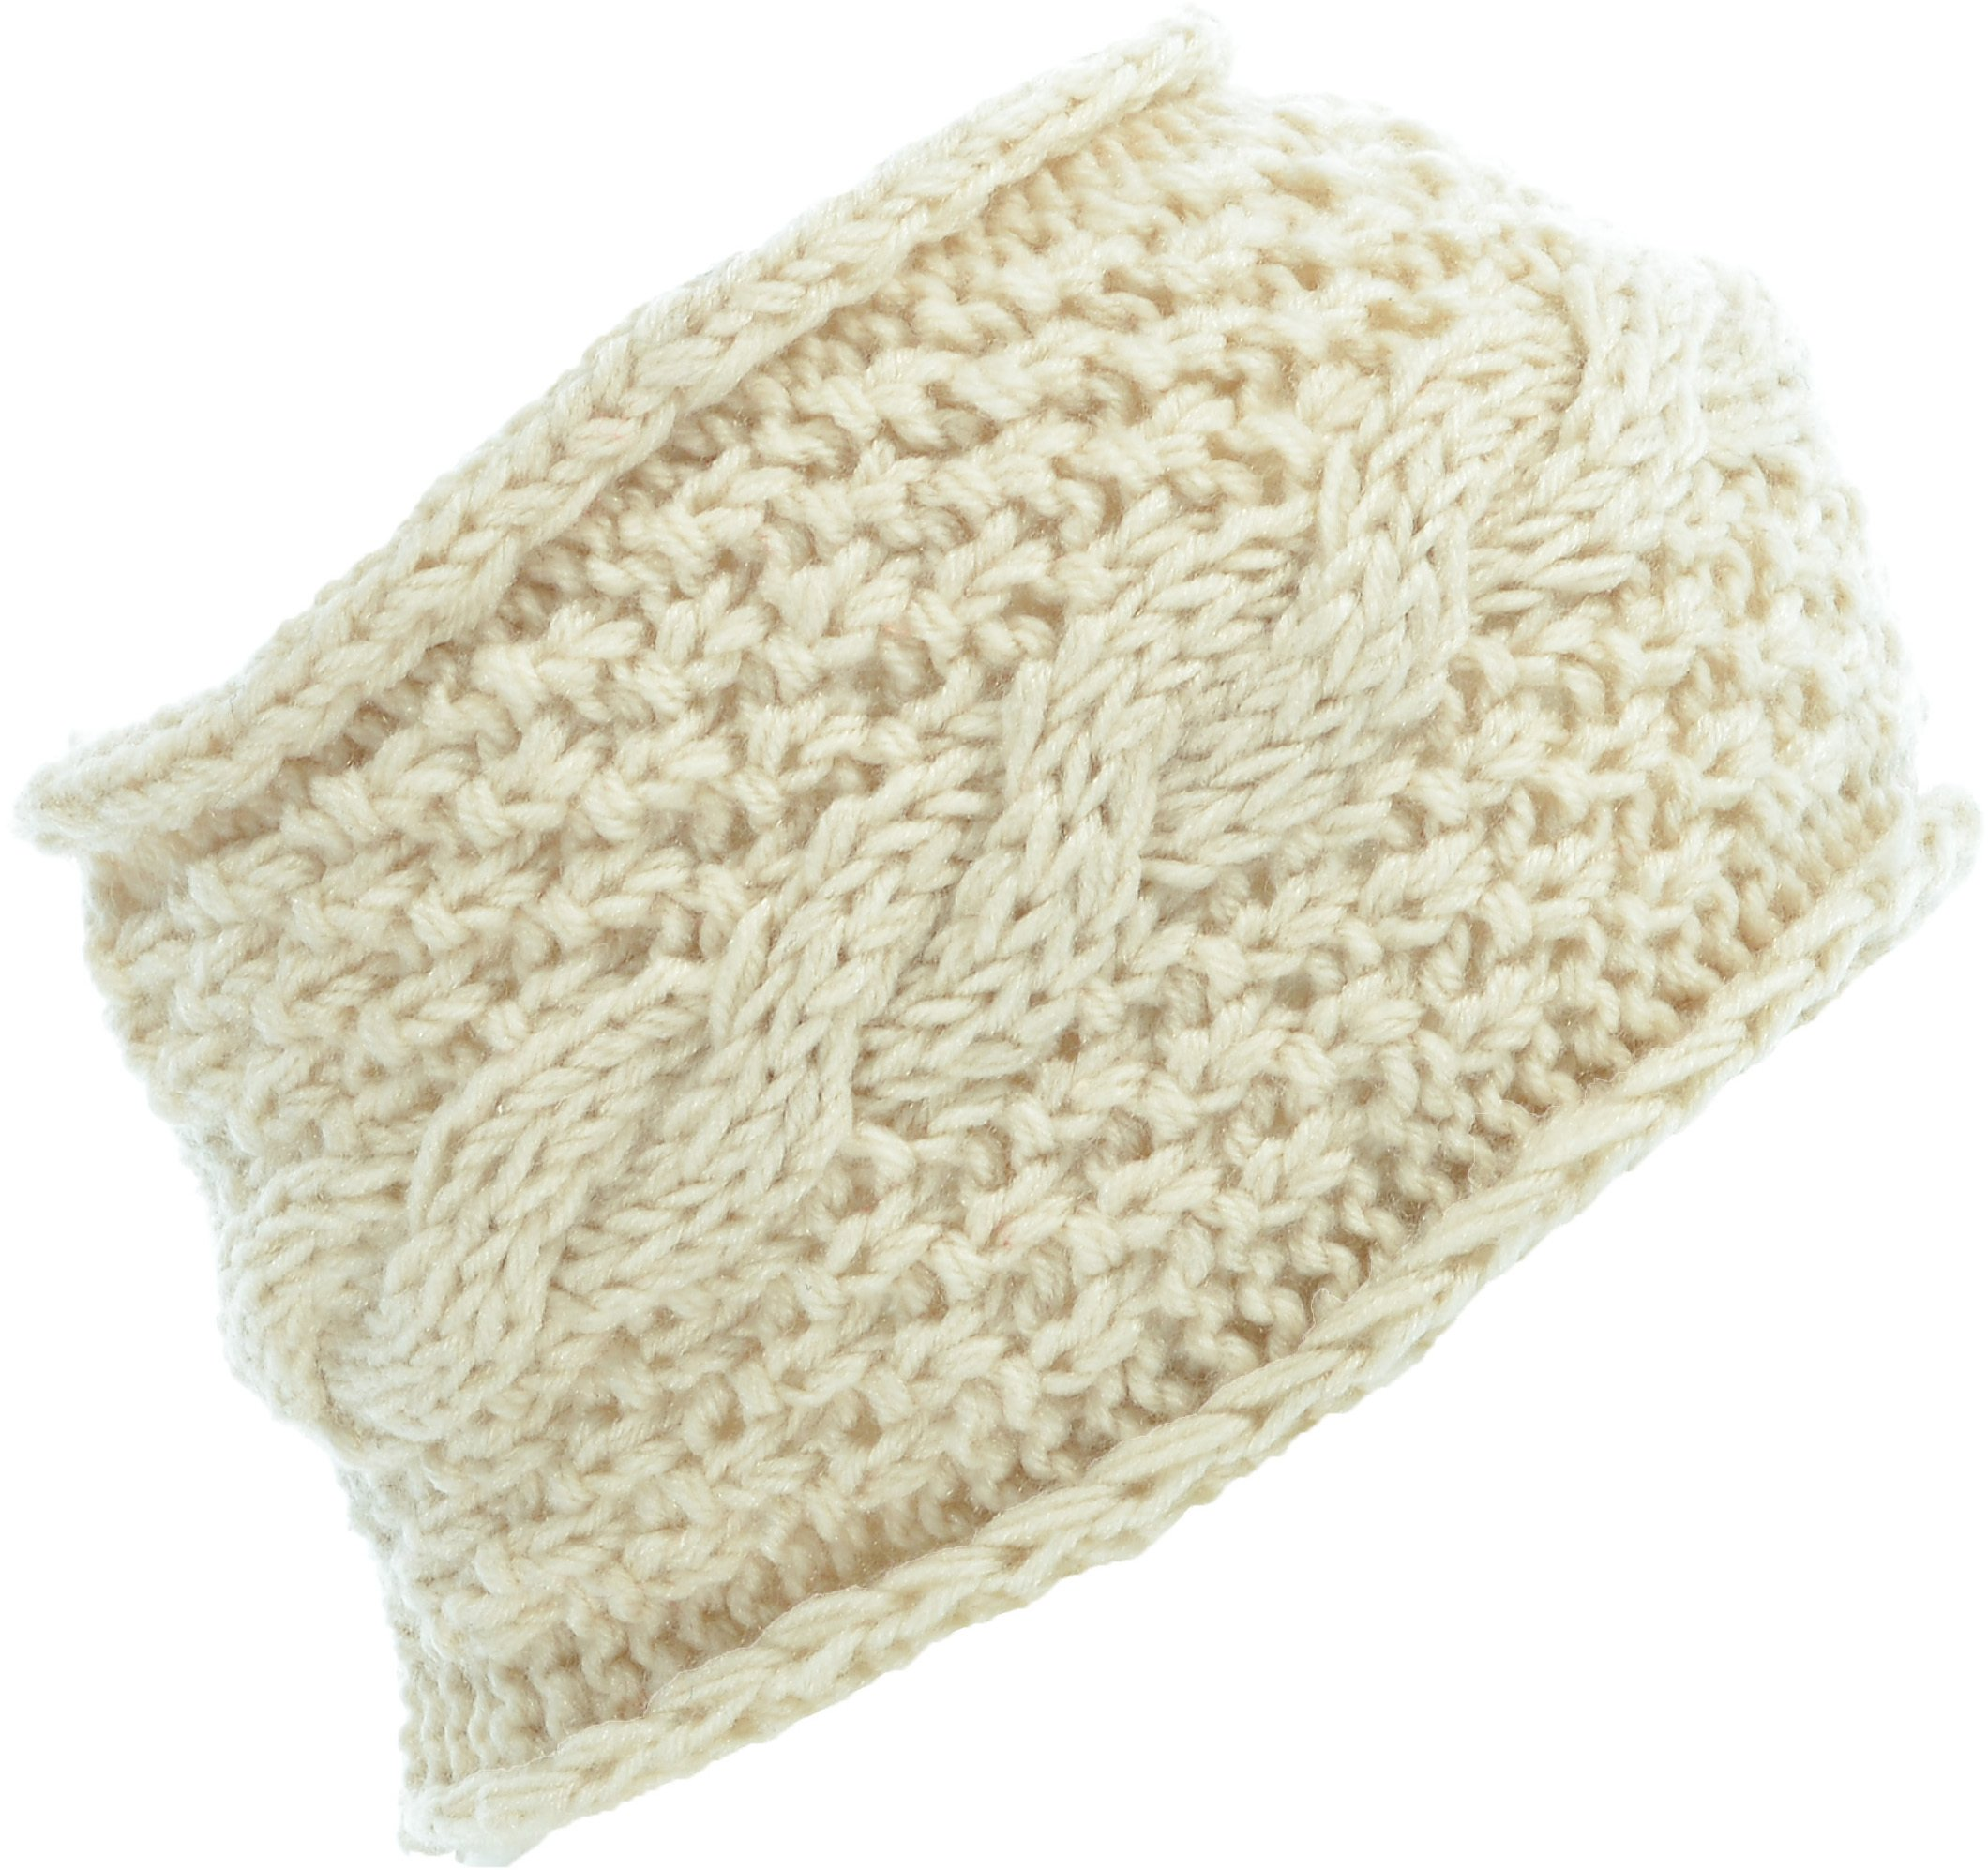 Hand By Hand Aprileo Women's Cable Knitted Headband Headwrap Stretchy Fit [Beige.](One Size)